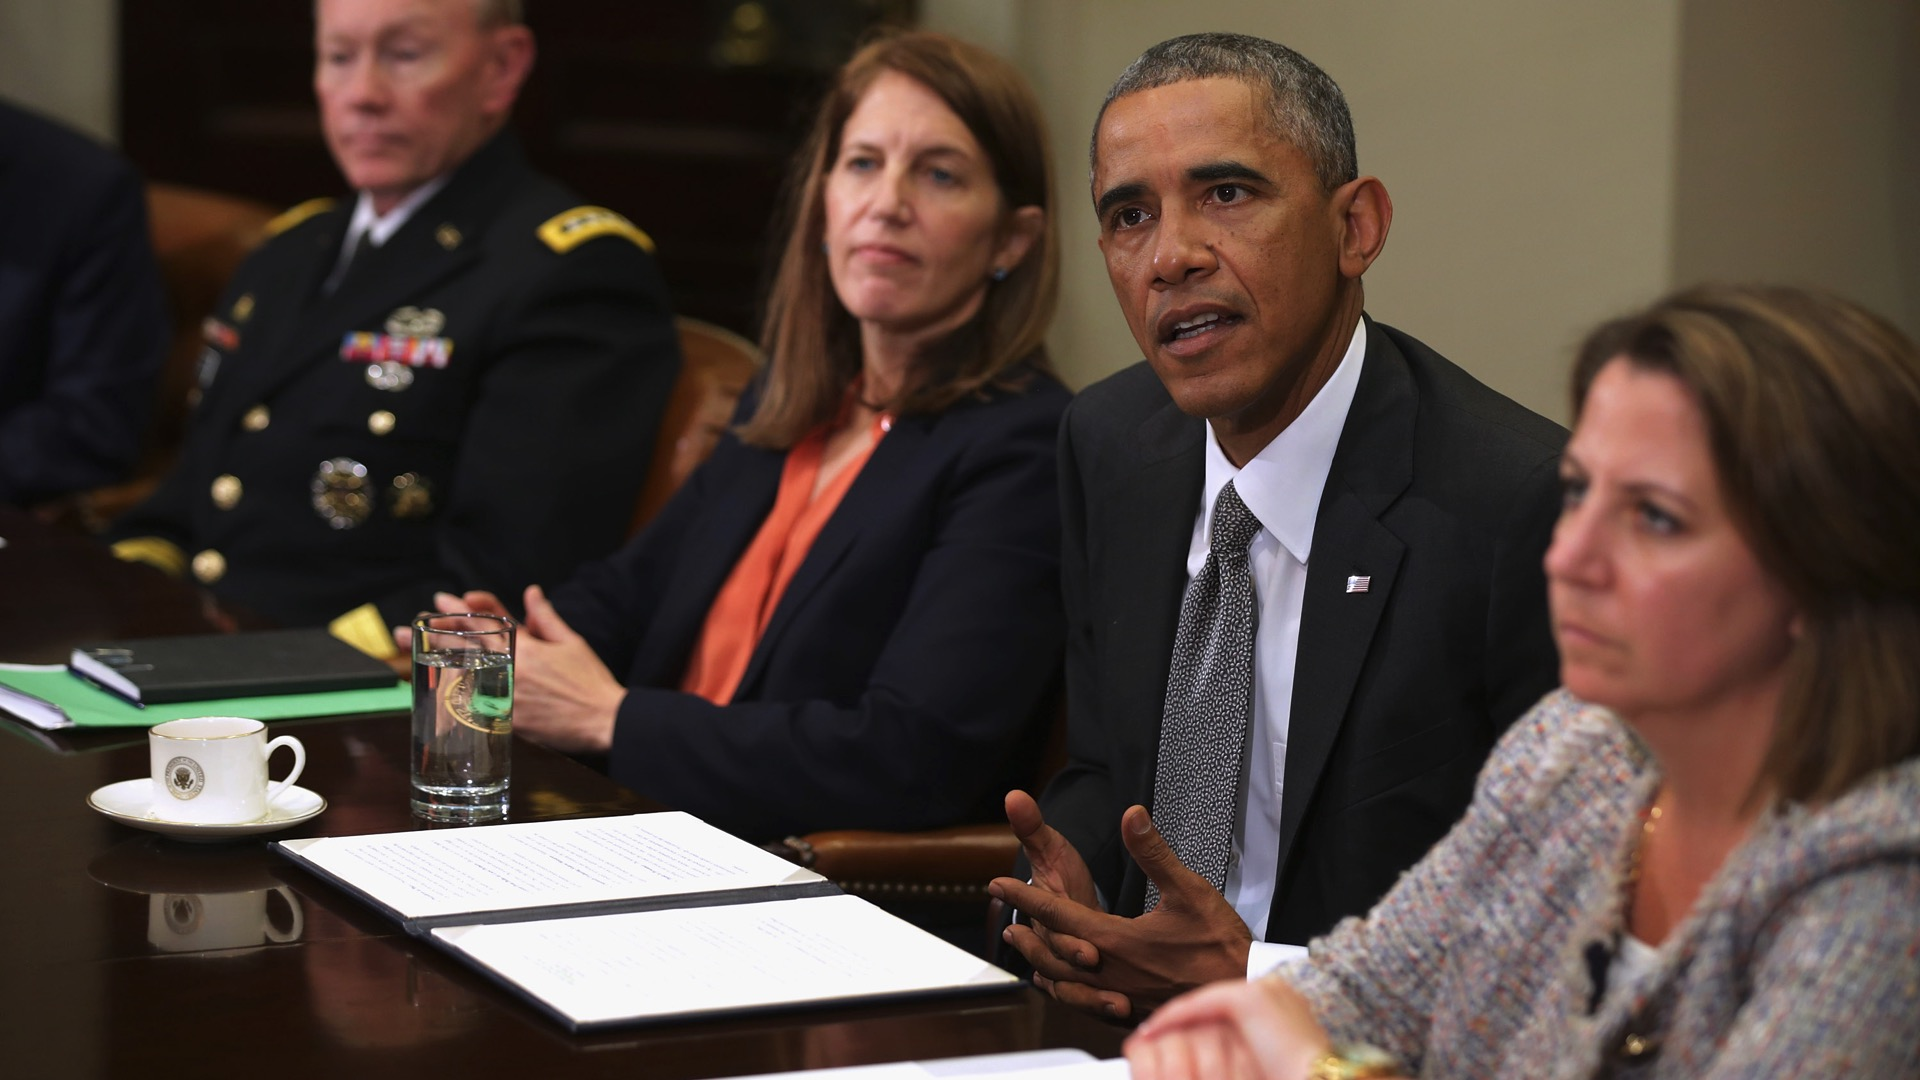 Win Your Next Meeting With This Tip From Obama's Staff